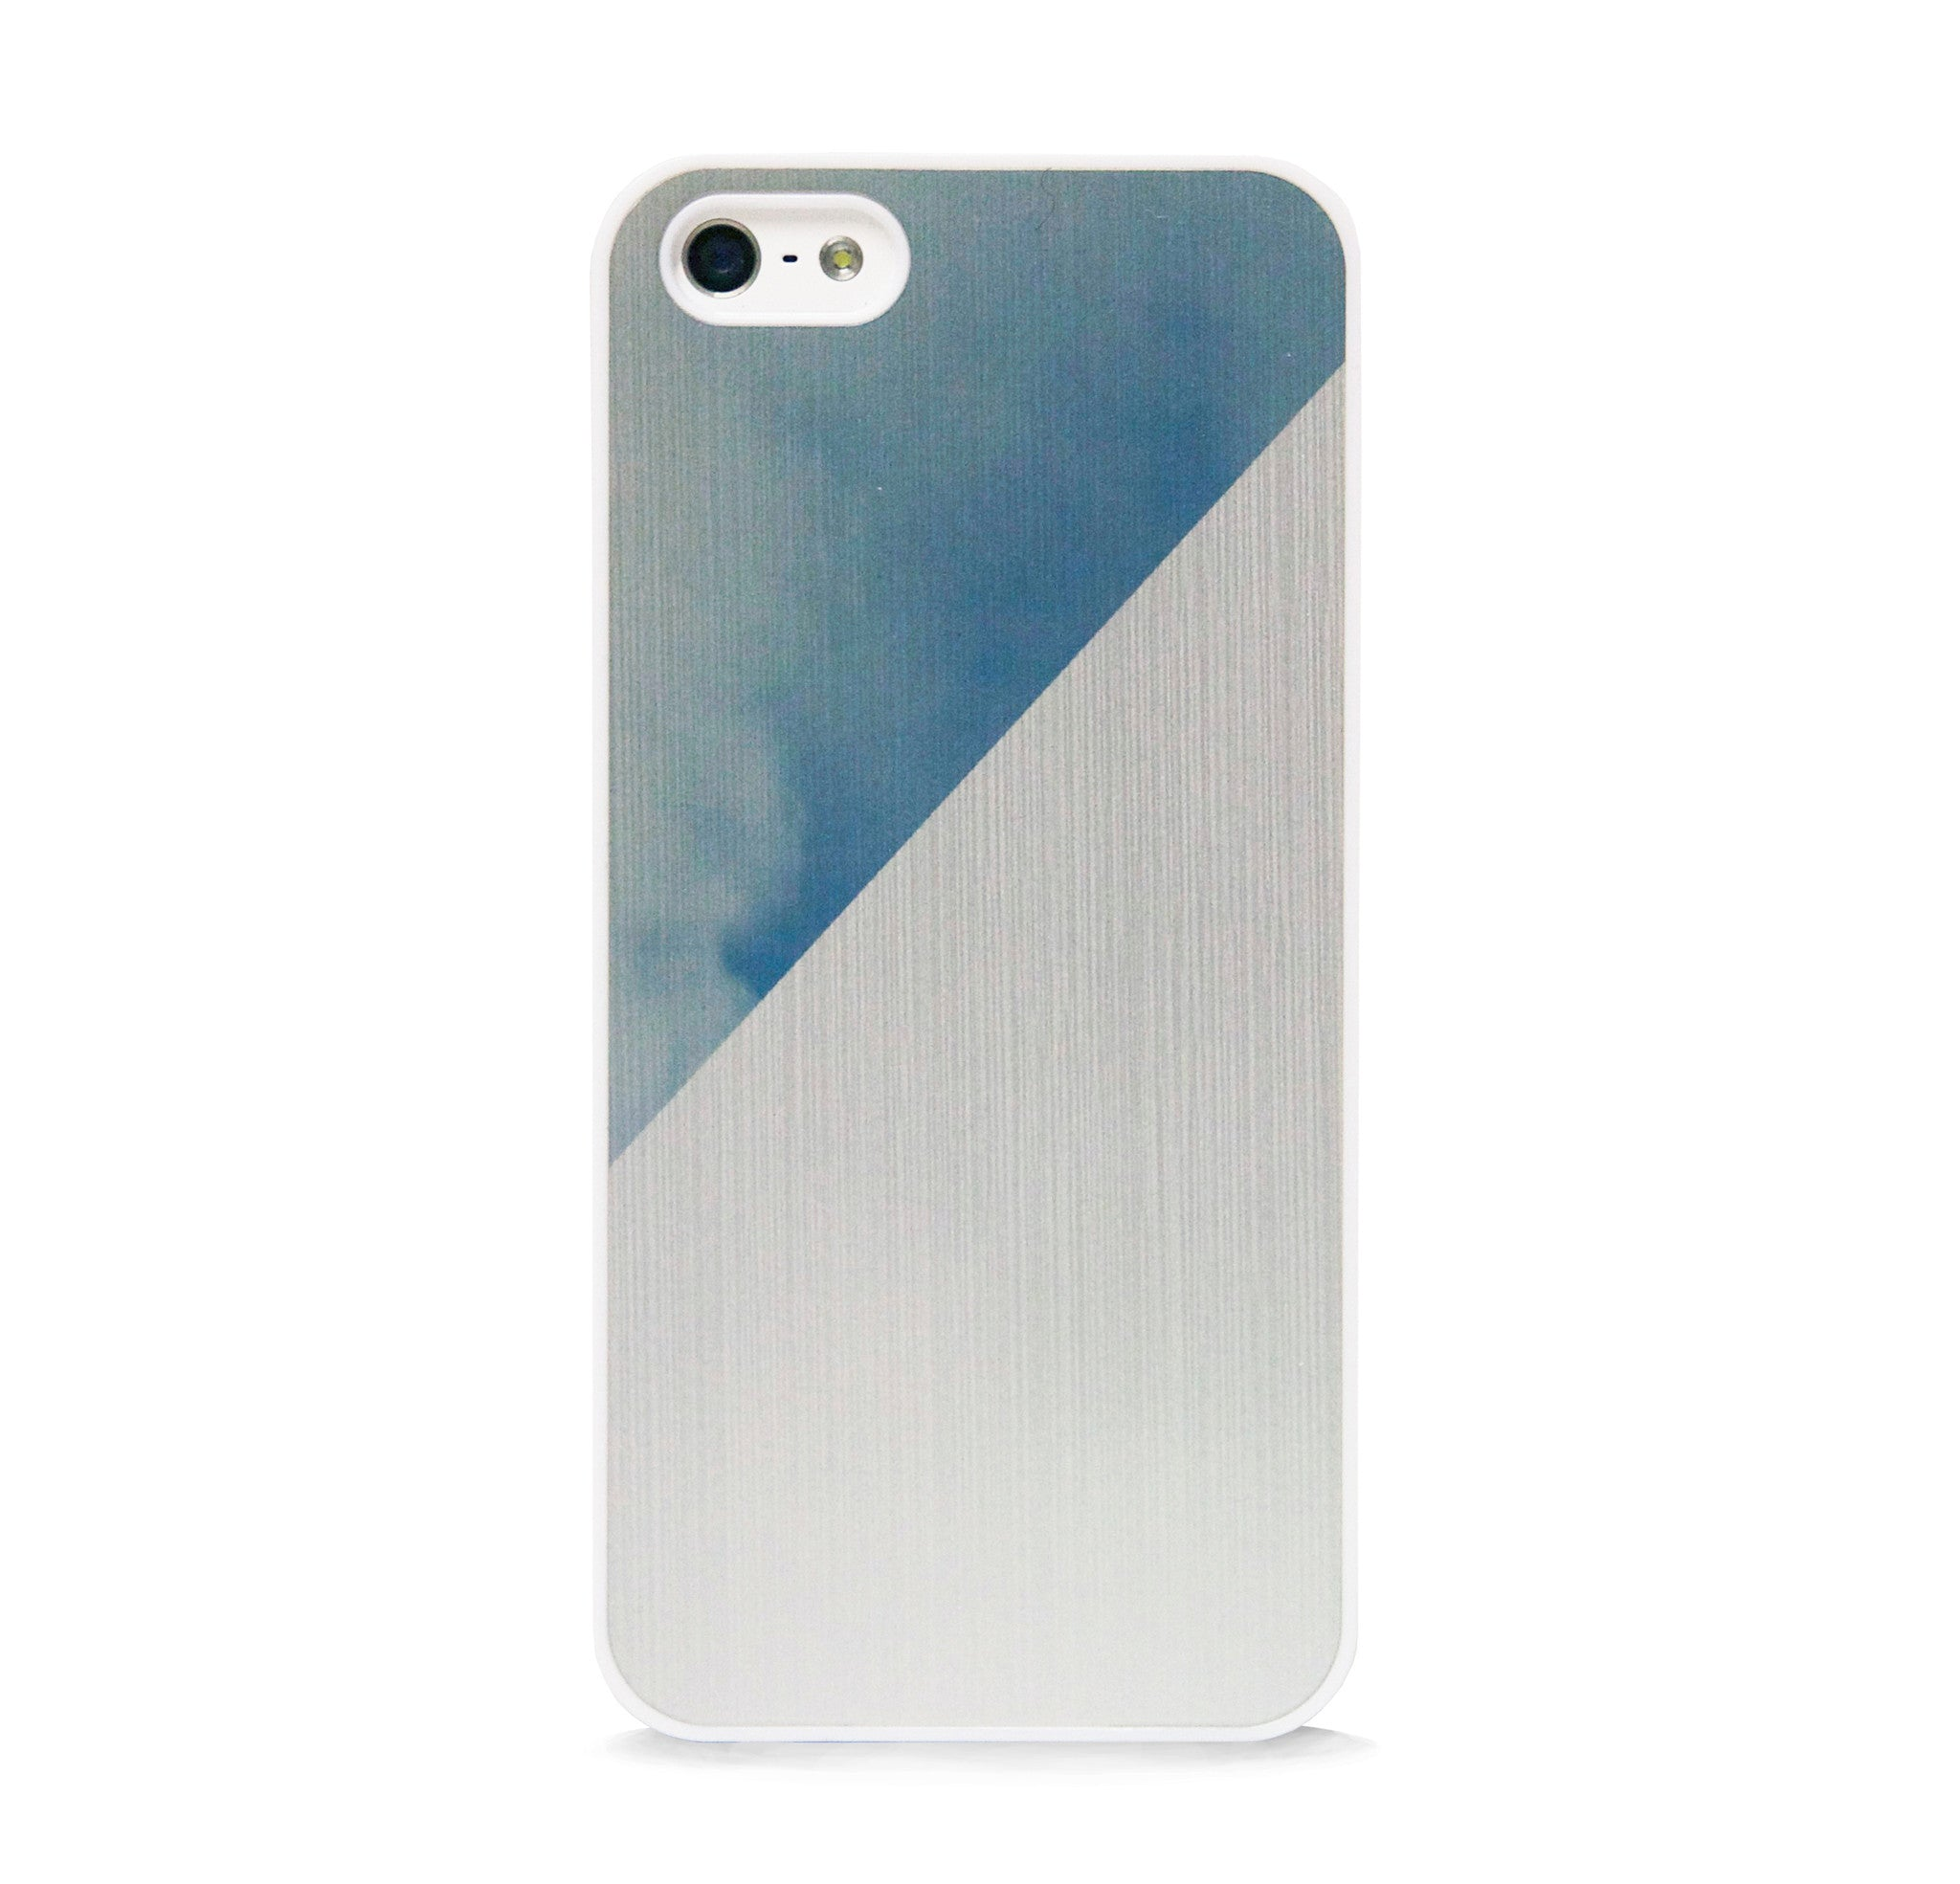 BRUSHED METAL SKY FOR IPHONE 5/5S, IPHONE SE